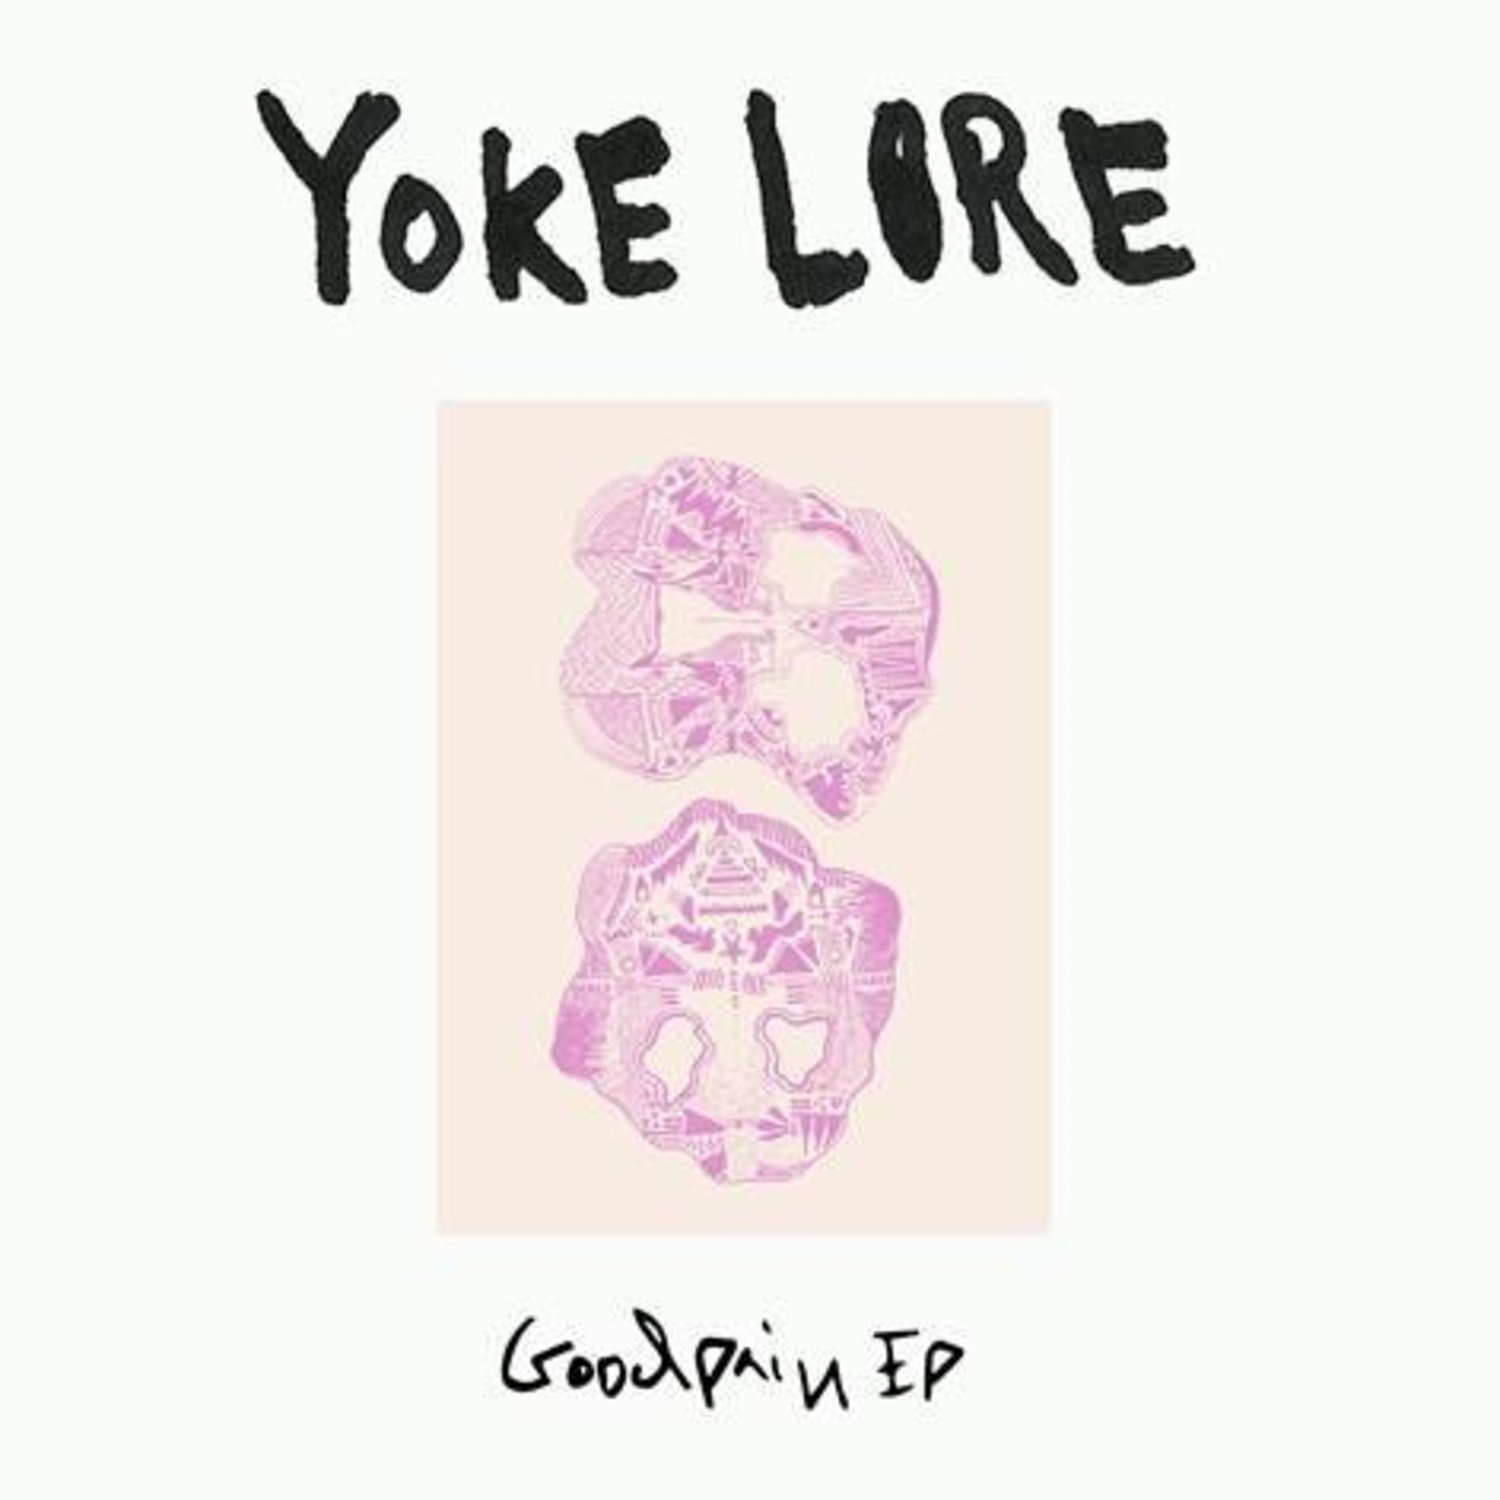 Yoke Lore - Goodpain (Extended Play)